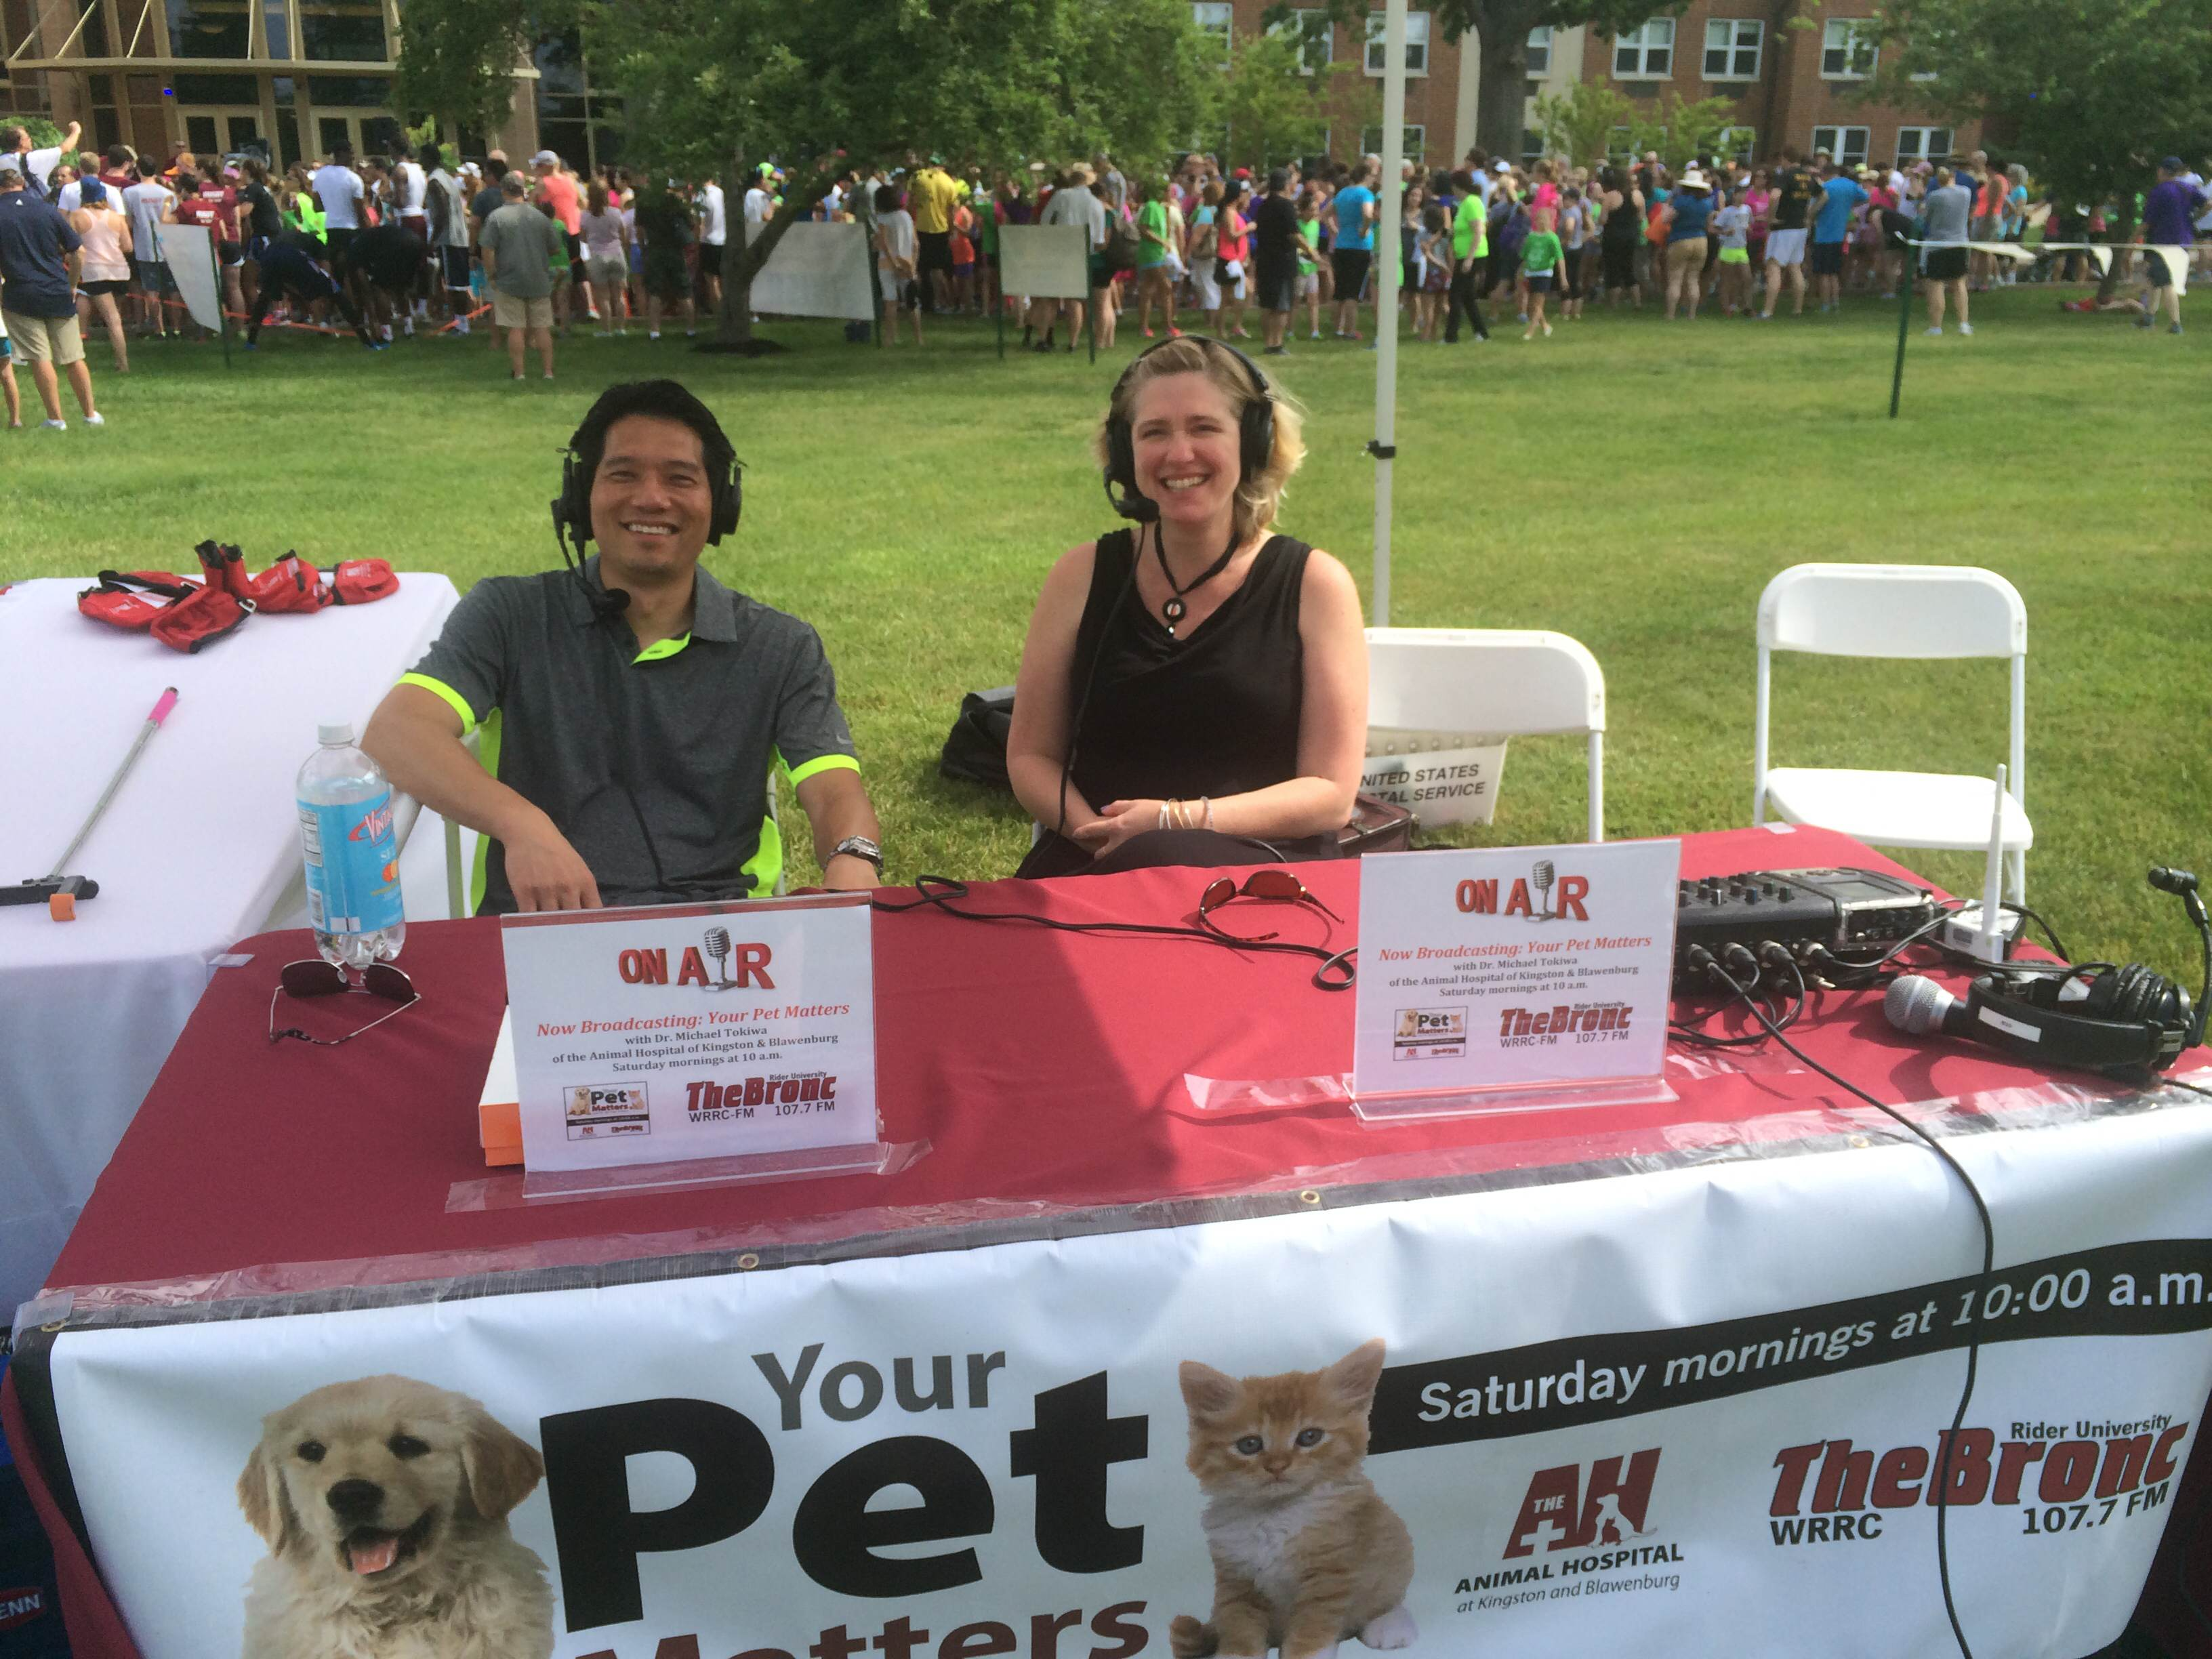 June 13, 2015 – Live from Rider Reunions Day with Heather Troyer!